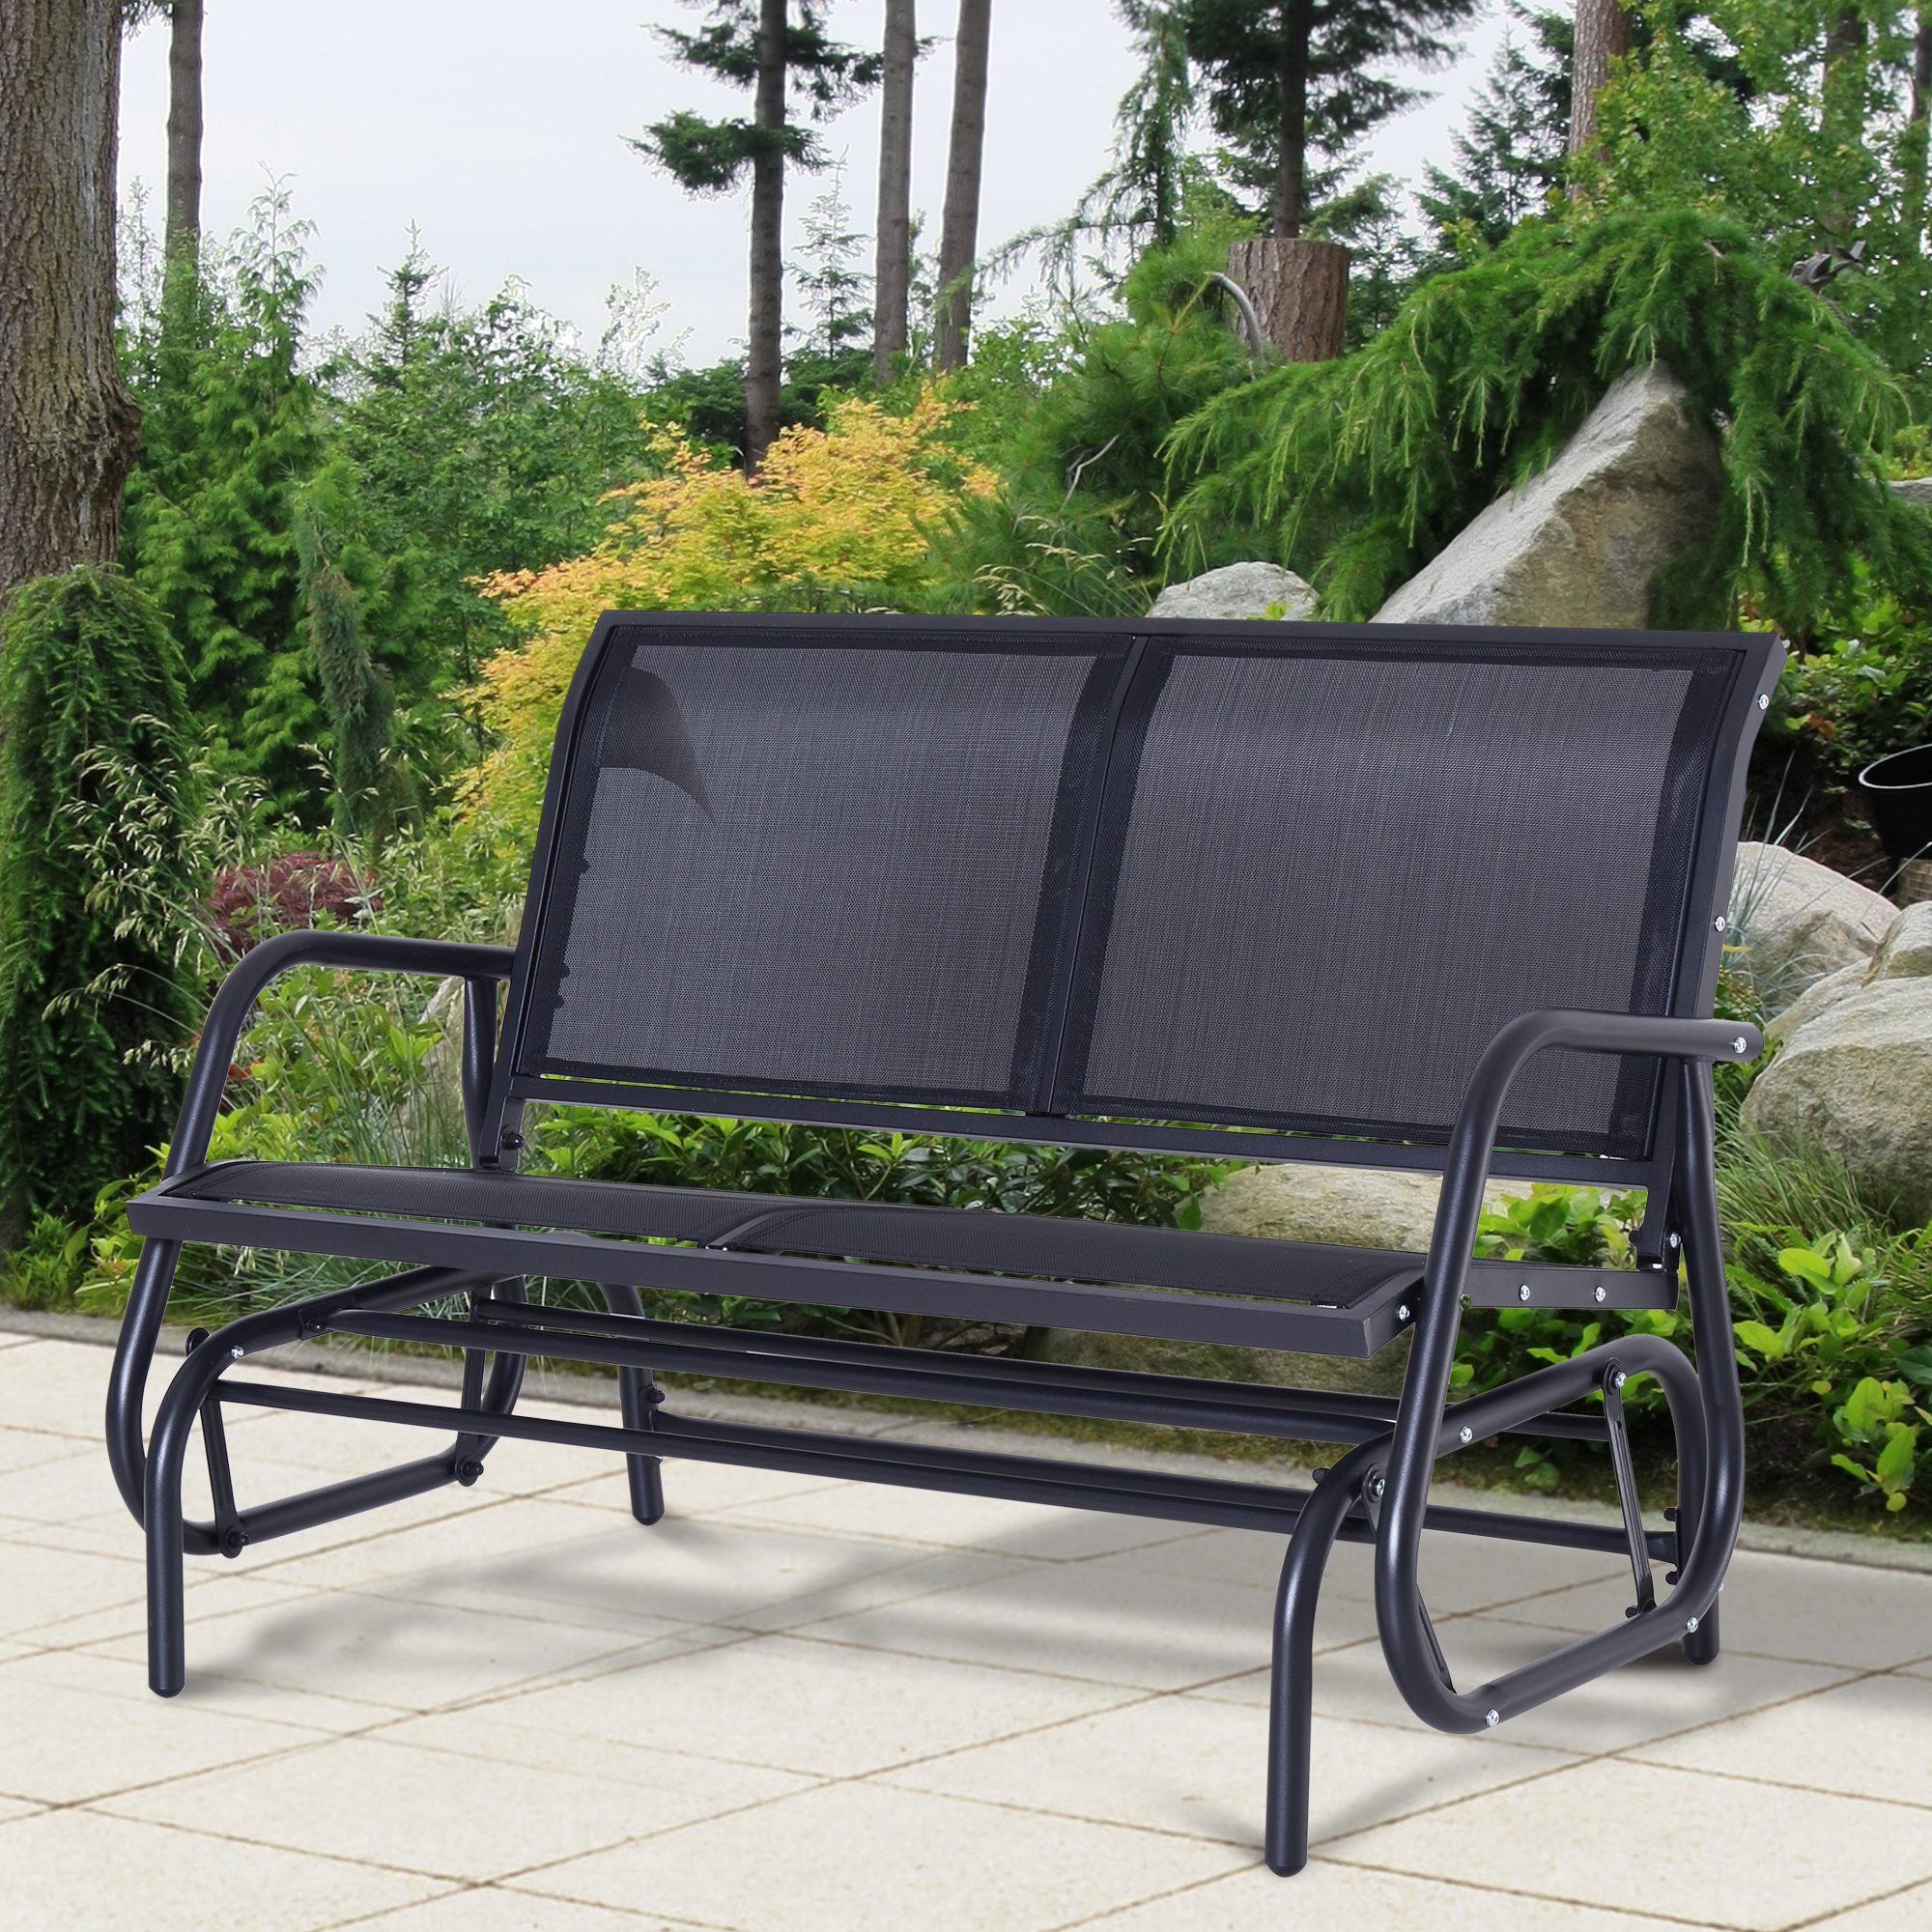 Sling Double Glider Benches Regarding Latest Details About Outsunny Patio Garden Glider Bench 2 Person Double Swing Chair Rocker Deck Black (View 21 of 30)